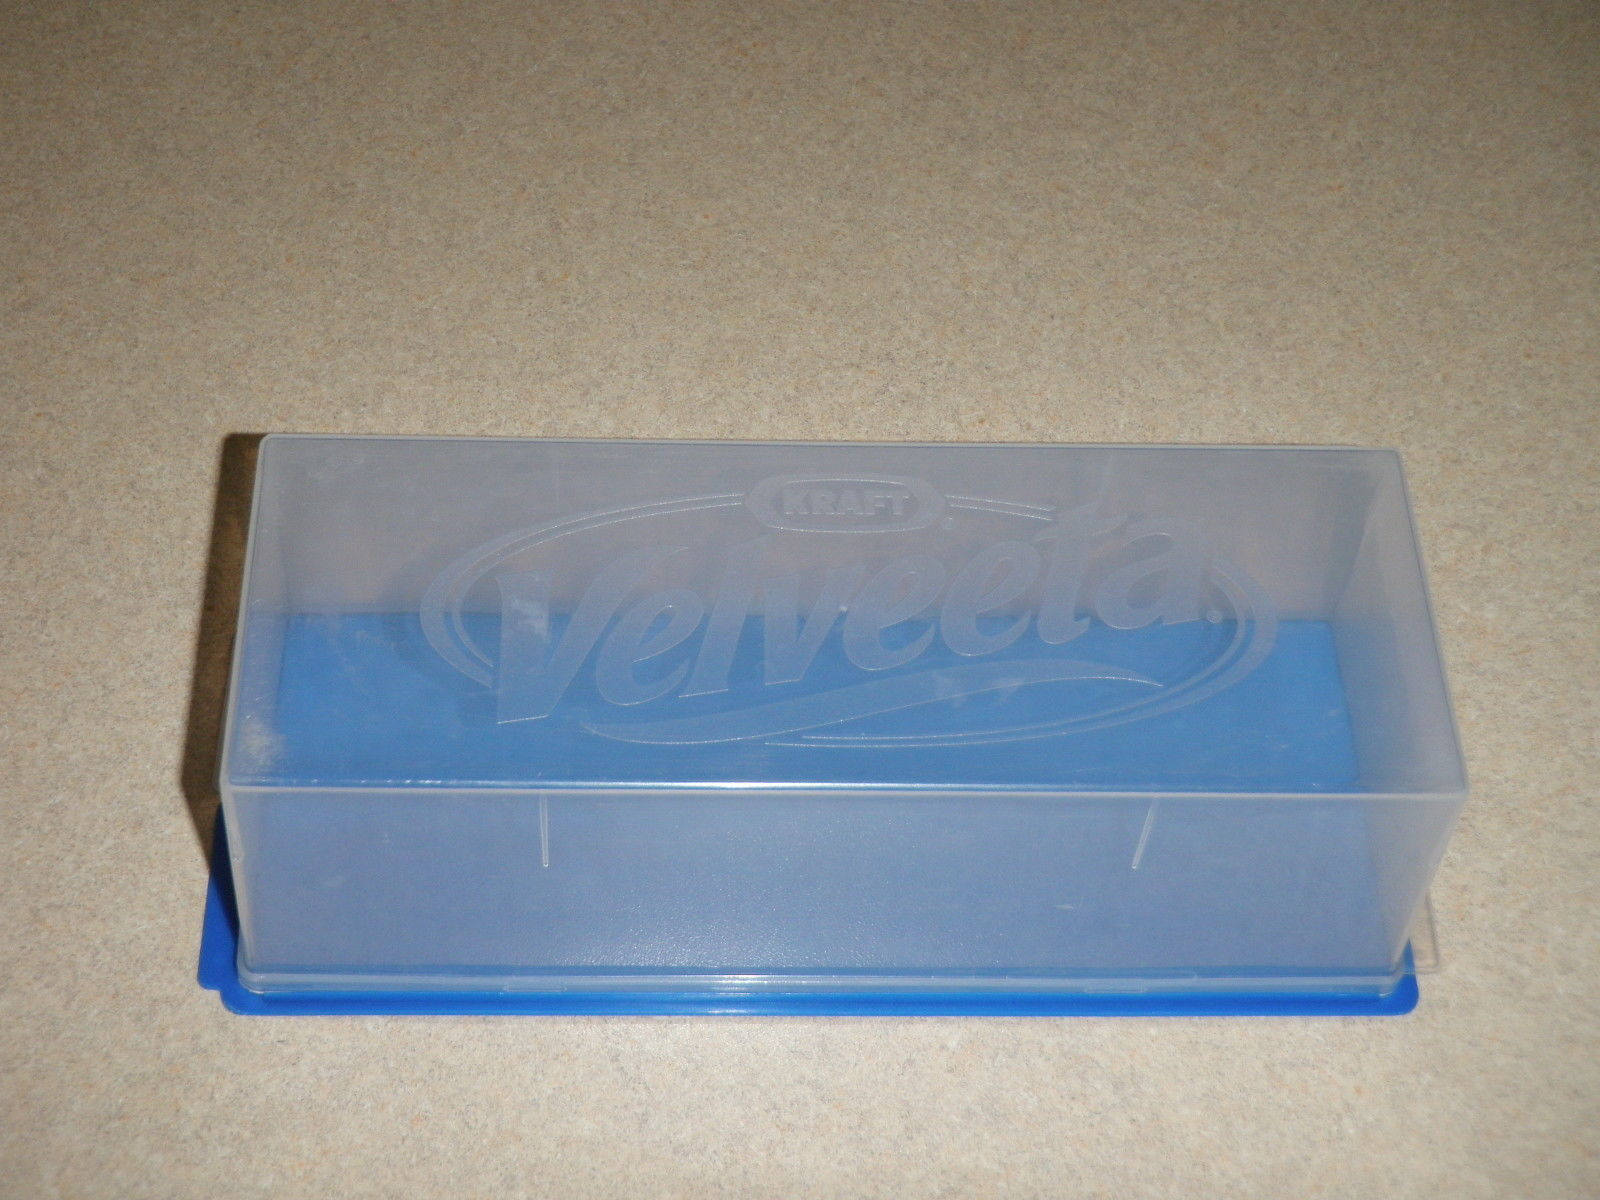 S l1600. S l1600. Vintage Kraft Velveeta Cheese Keeper Container Storage ... & Vintage Kraft Velveeta Cheese Keeper and 50 similar items